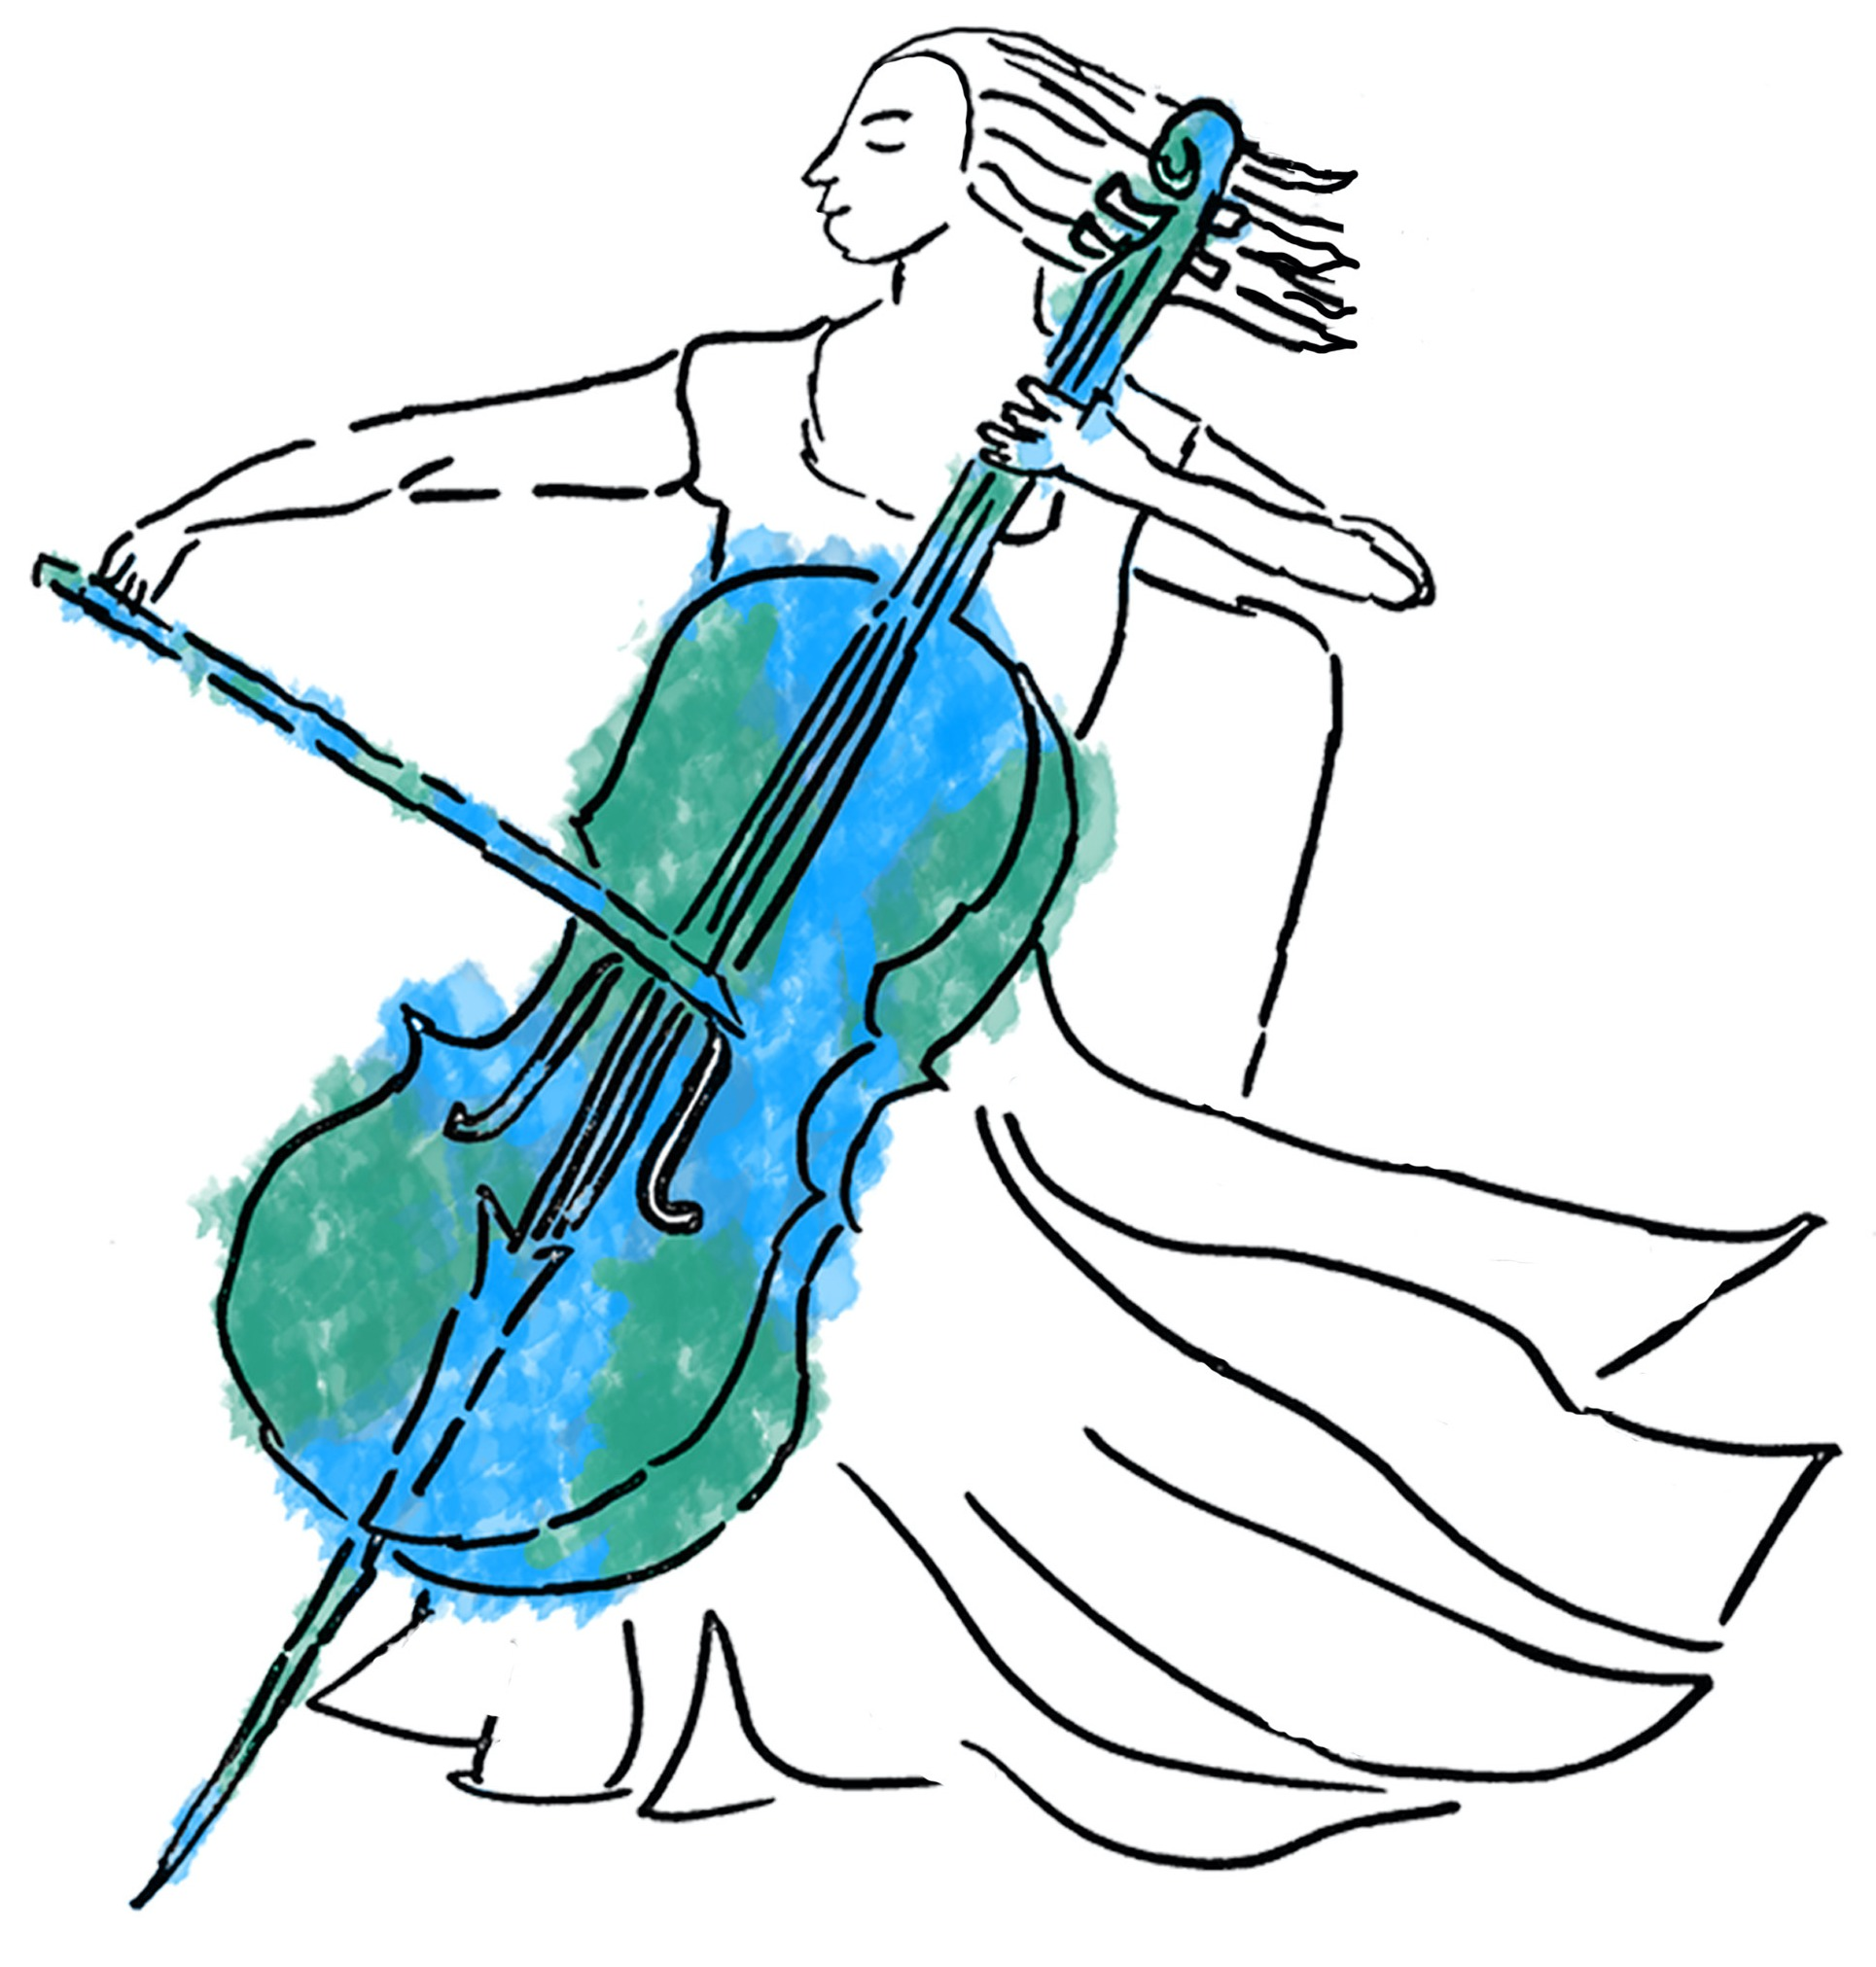 Logo of cellist playing a cello that is colored green and blue like the Earth.